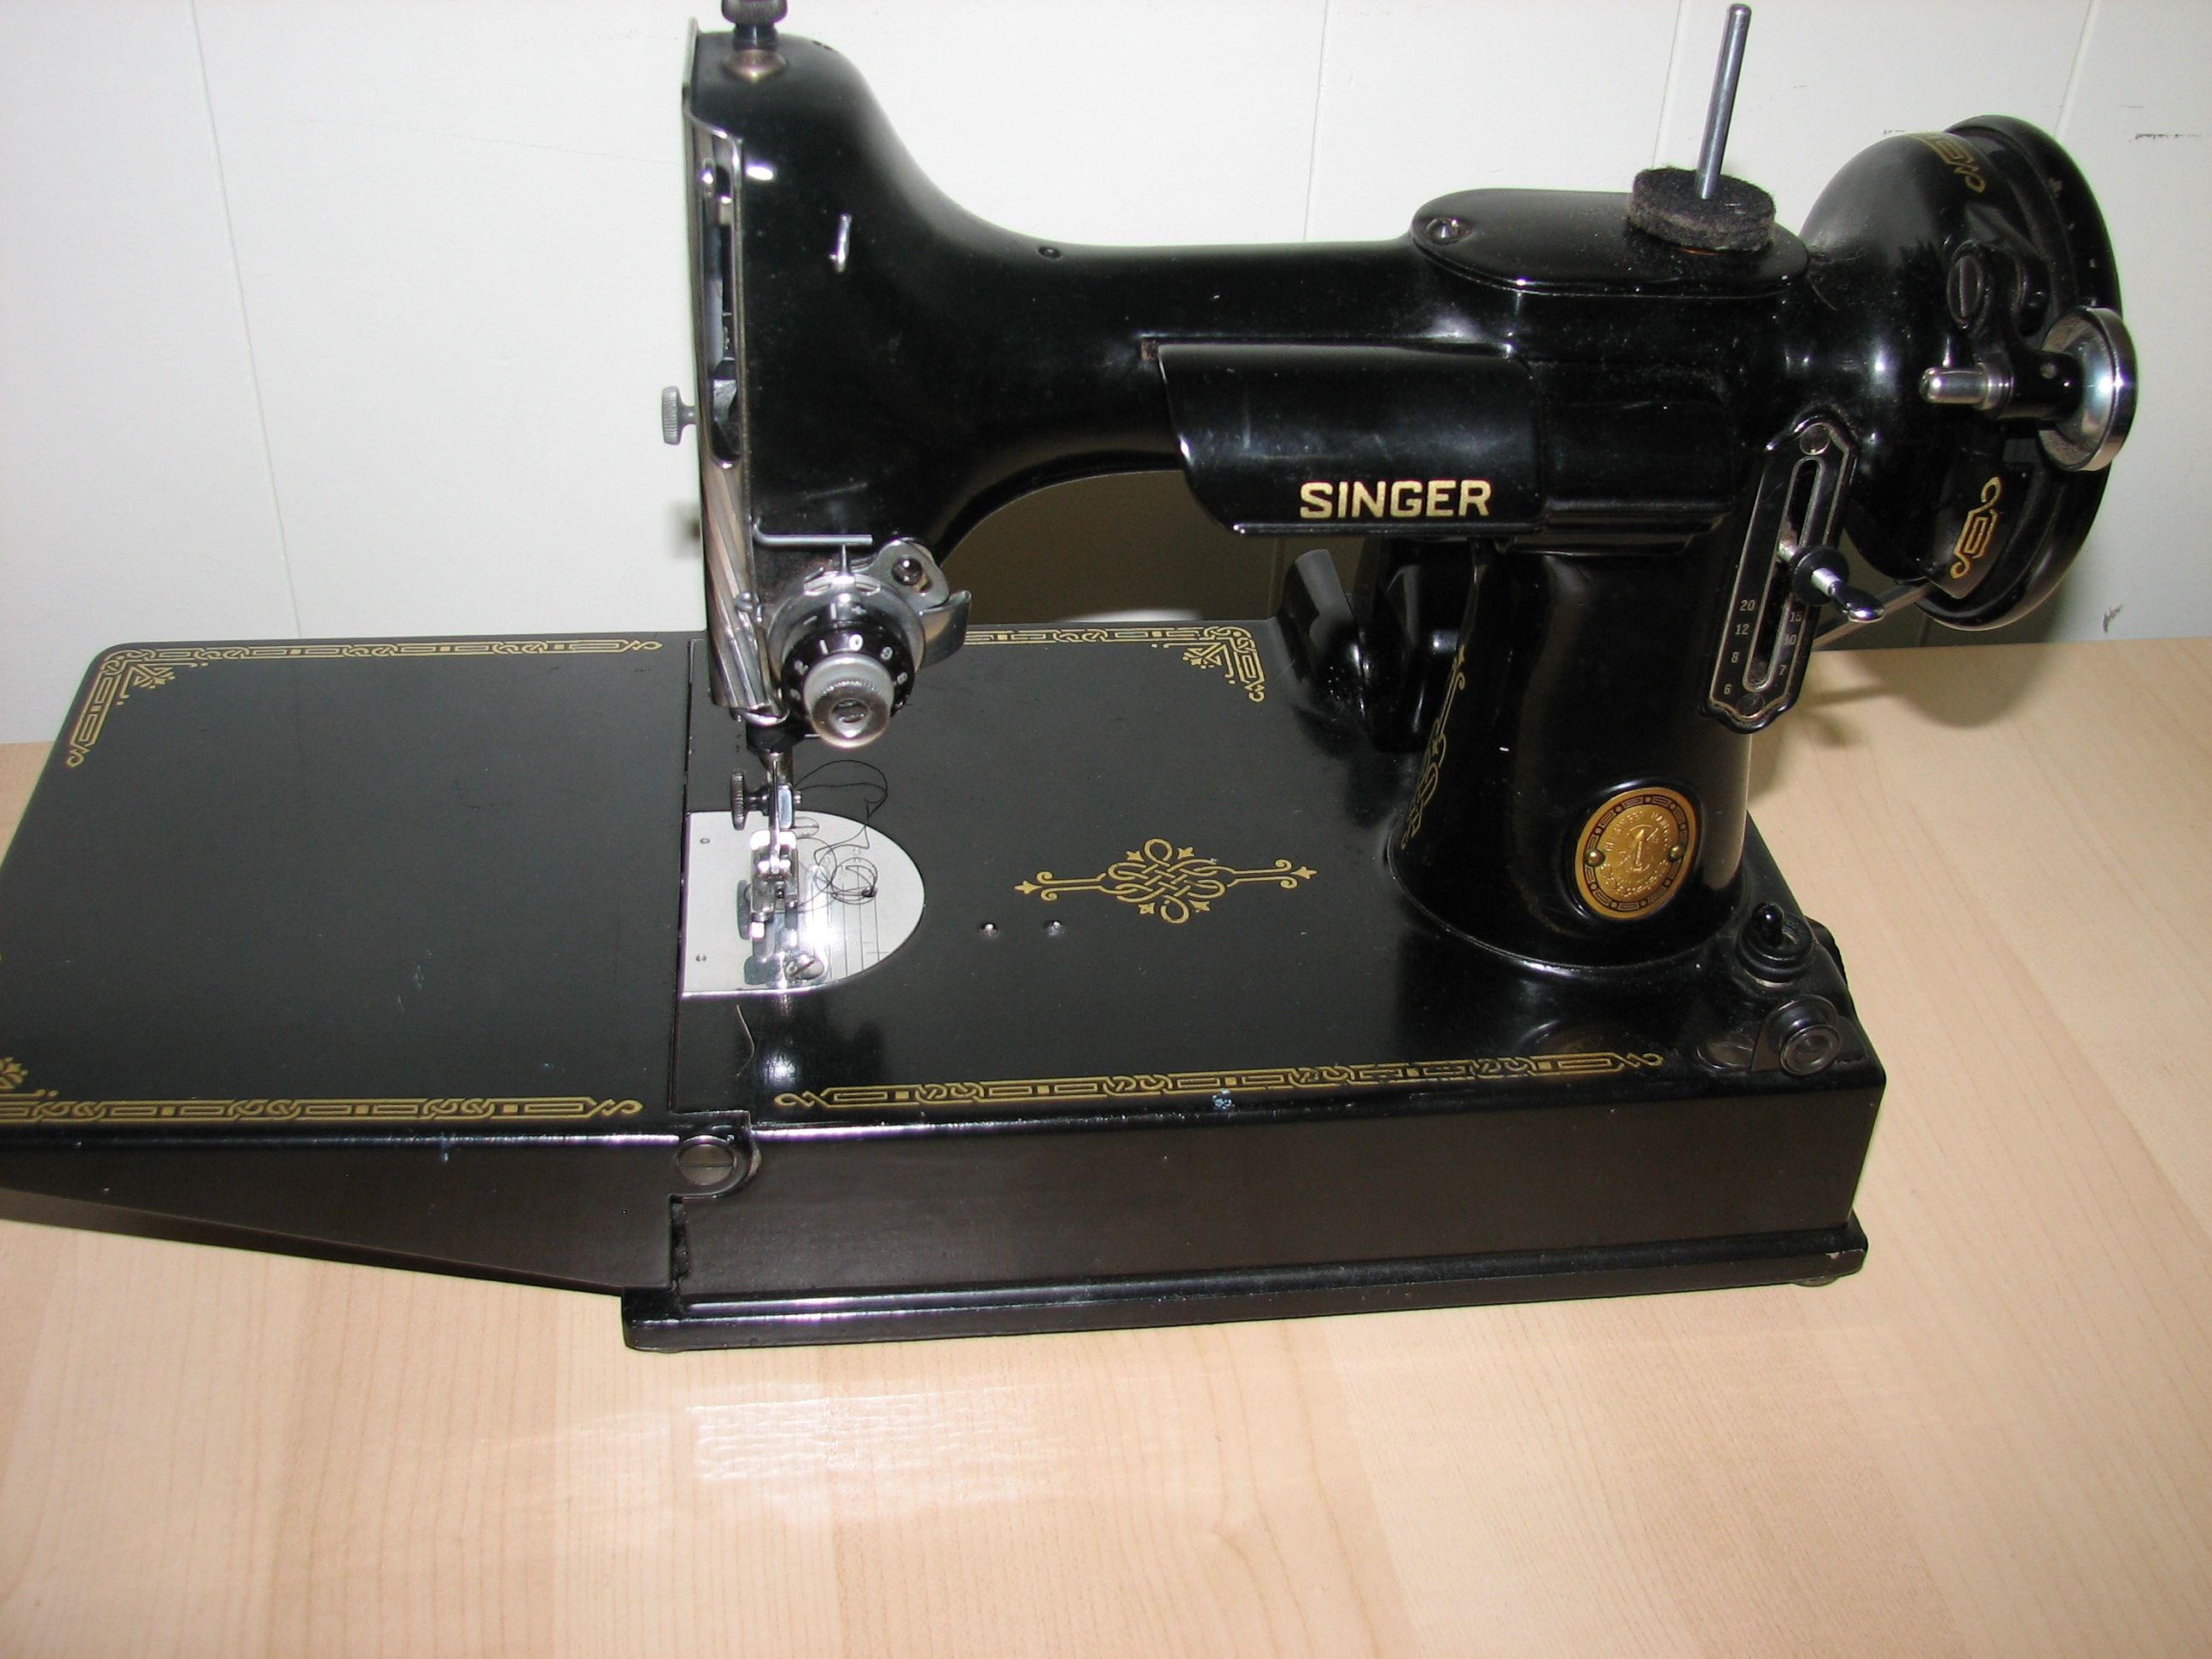 Singer Featherweight 221 from 1952